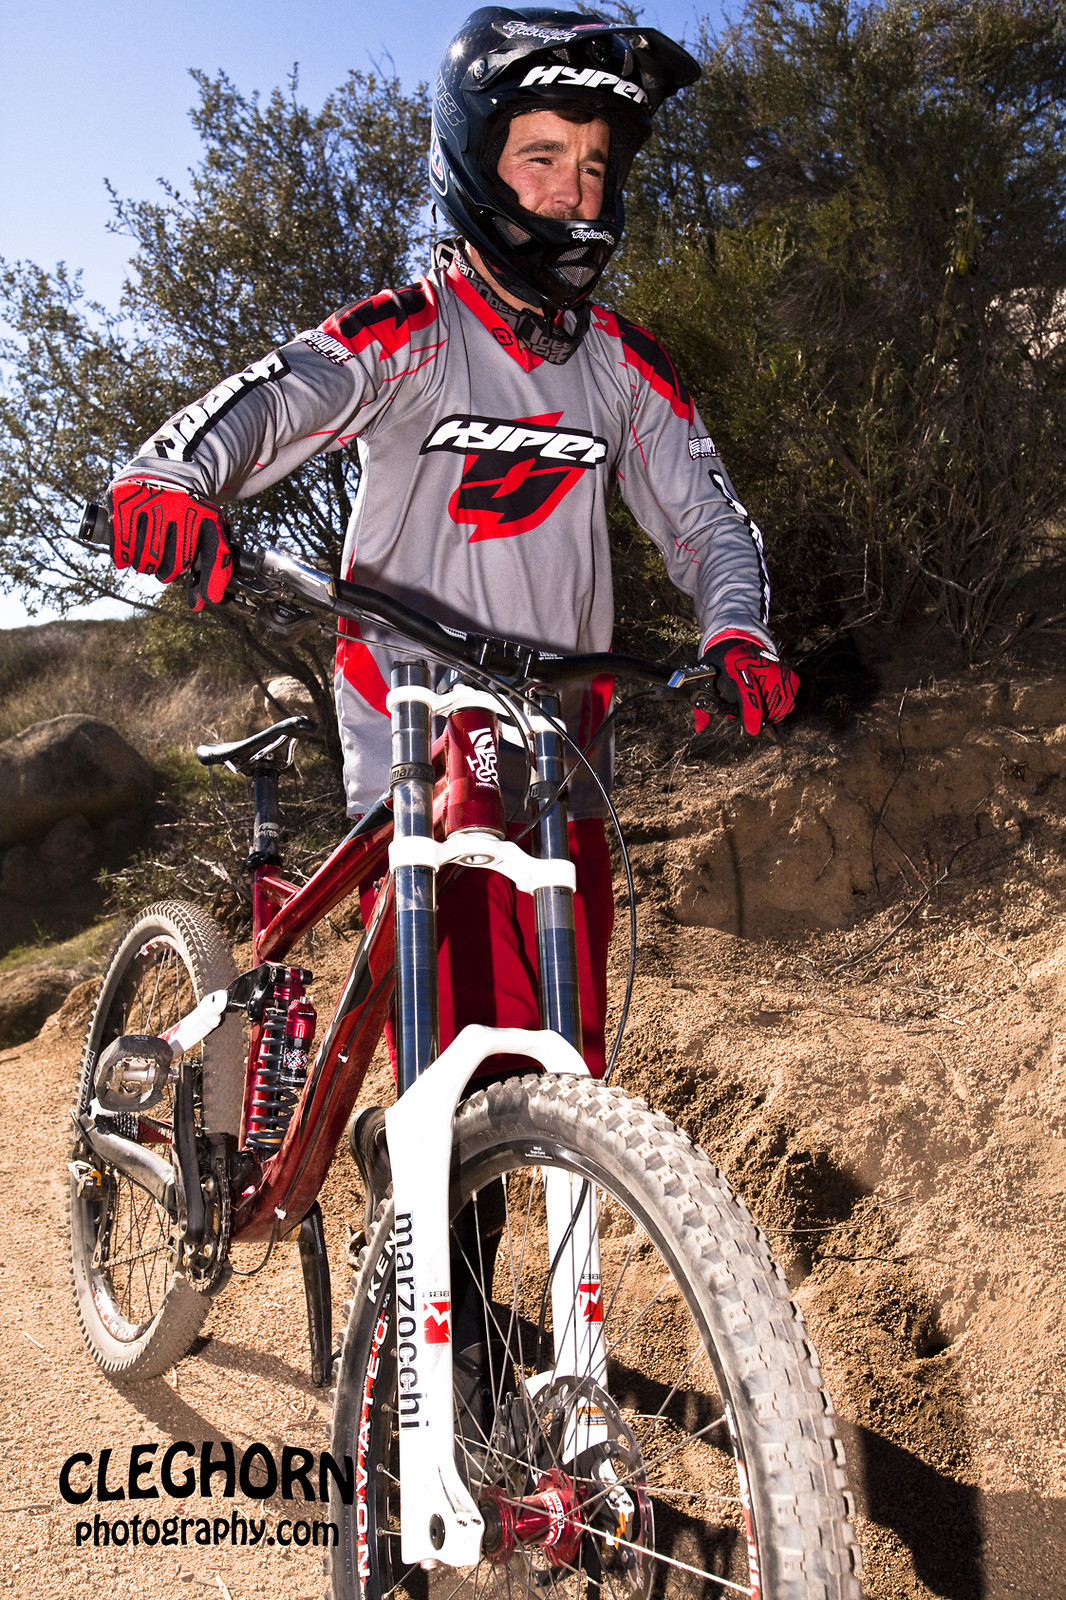 Hyper MTB - Cleghorn Photography - Mountain Biking Pictures - Vital MTB